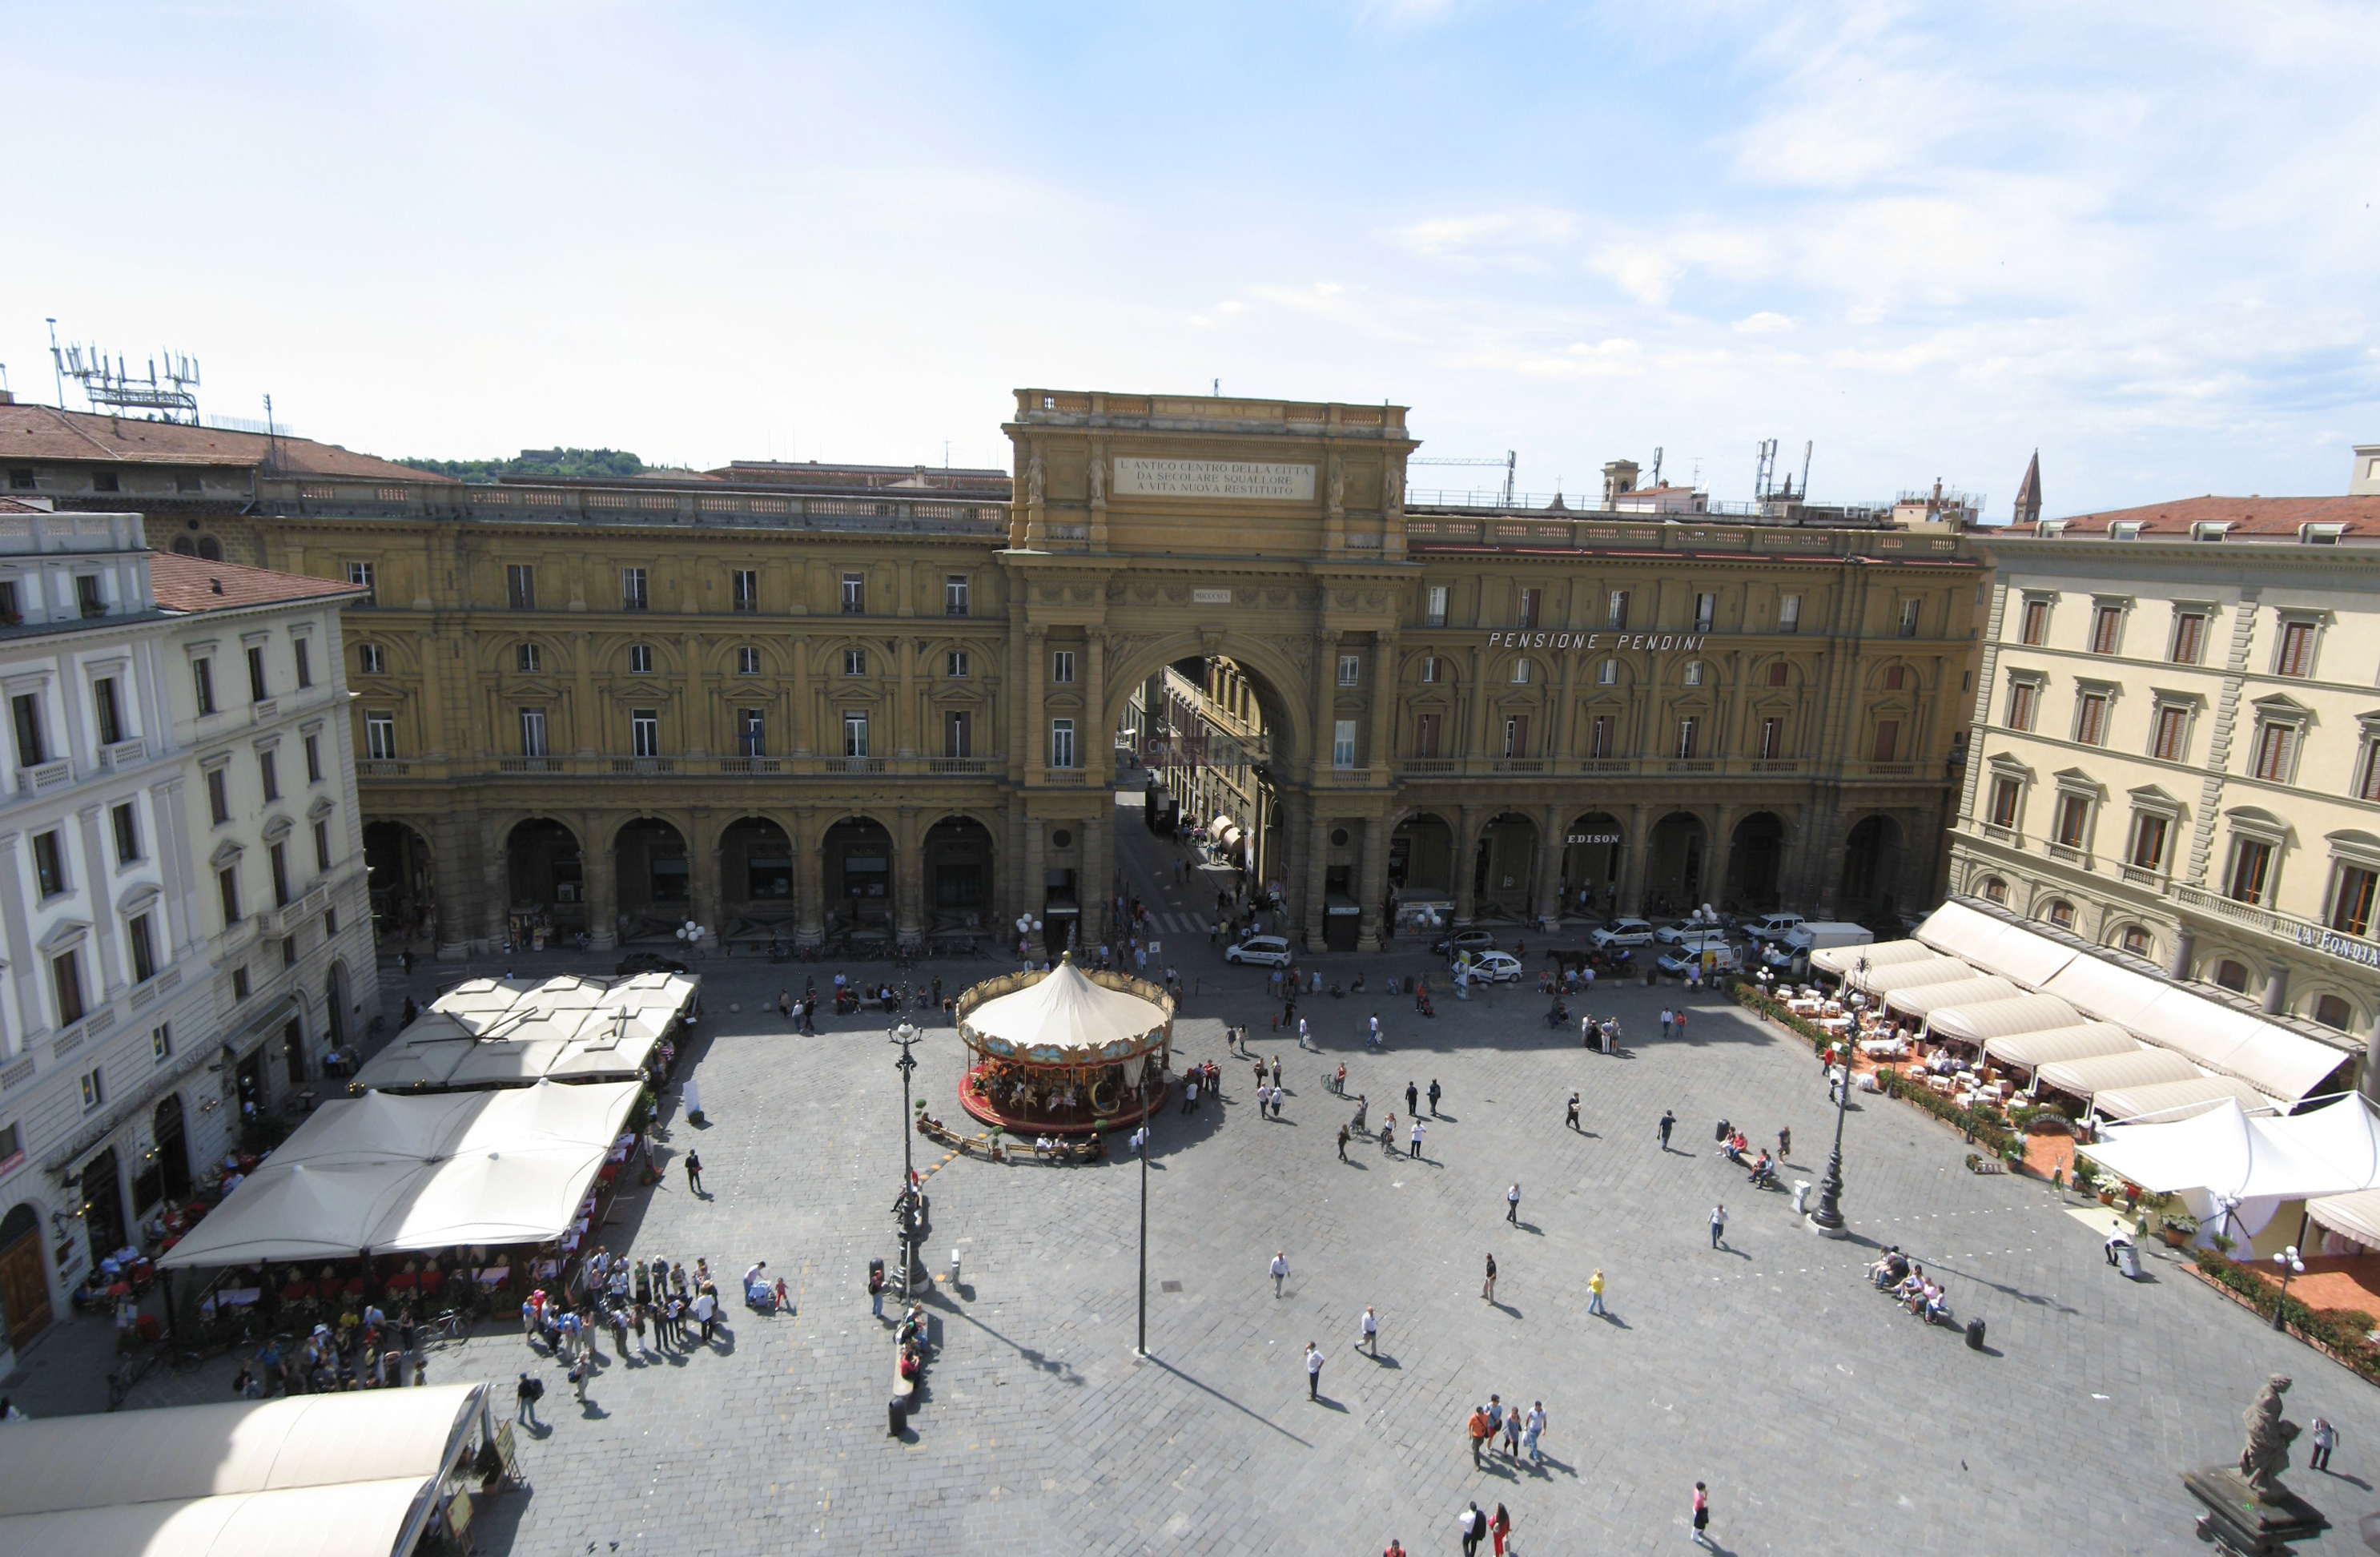 dating in florence italy An american expat living in florence, italy writes about daily life in her beloved city an american expat living in florence.